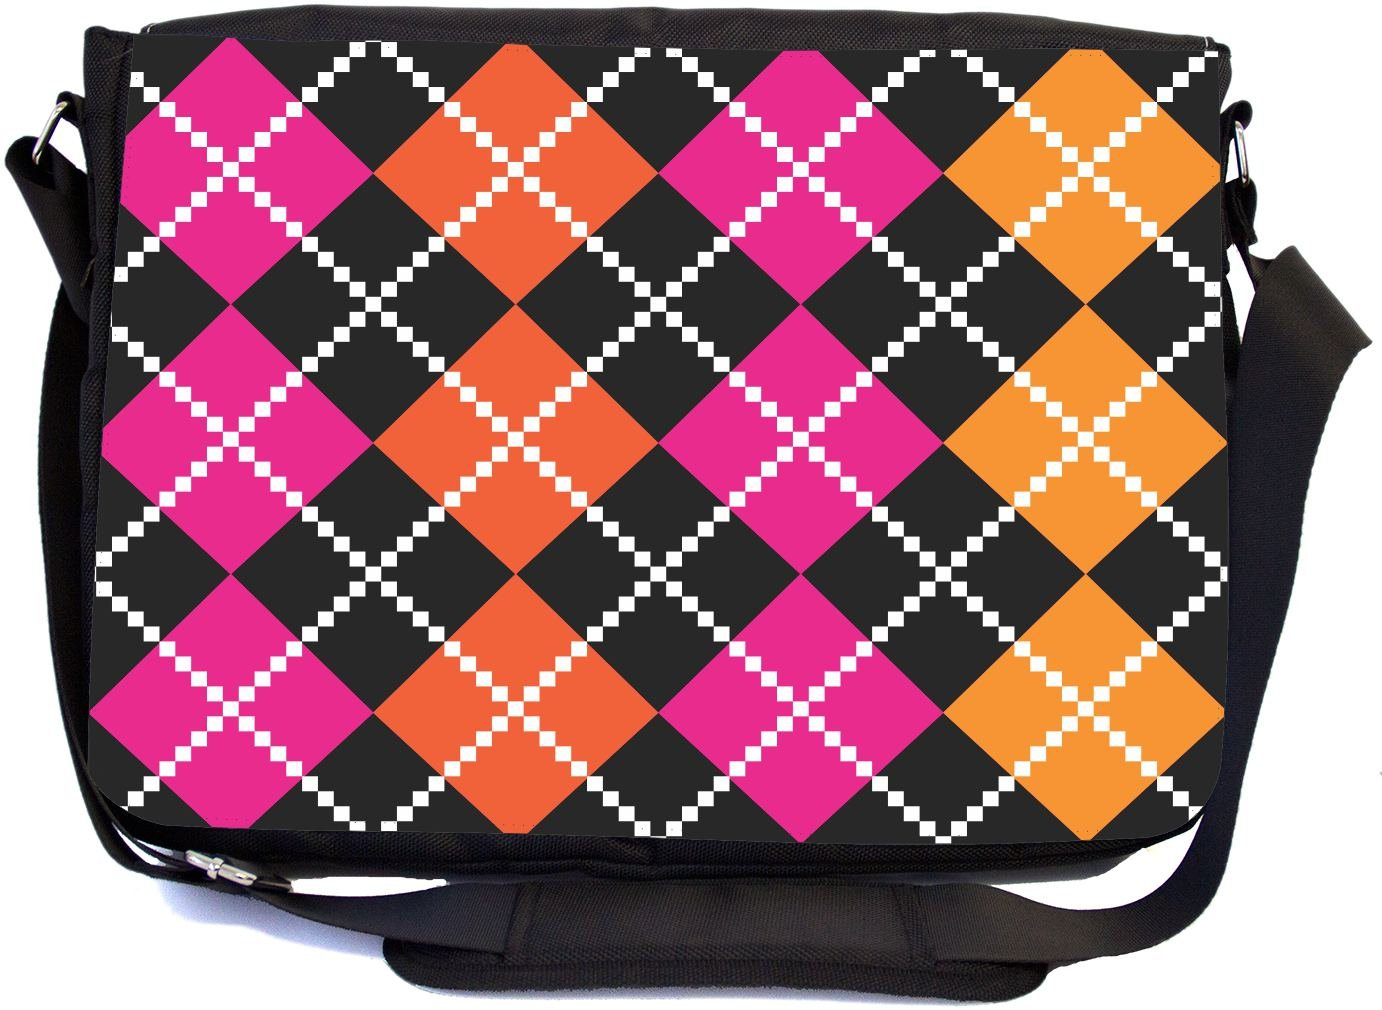 Rikki Knight Argyle Pink and Orange Design Design Multifunctional Messenger Bag - School Bag - Laptop Bag - with Padded Insert for School or Work - Includes Matching Compact Mirror